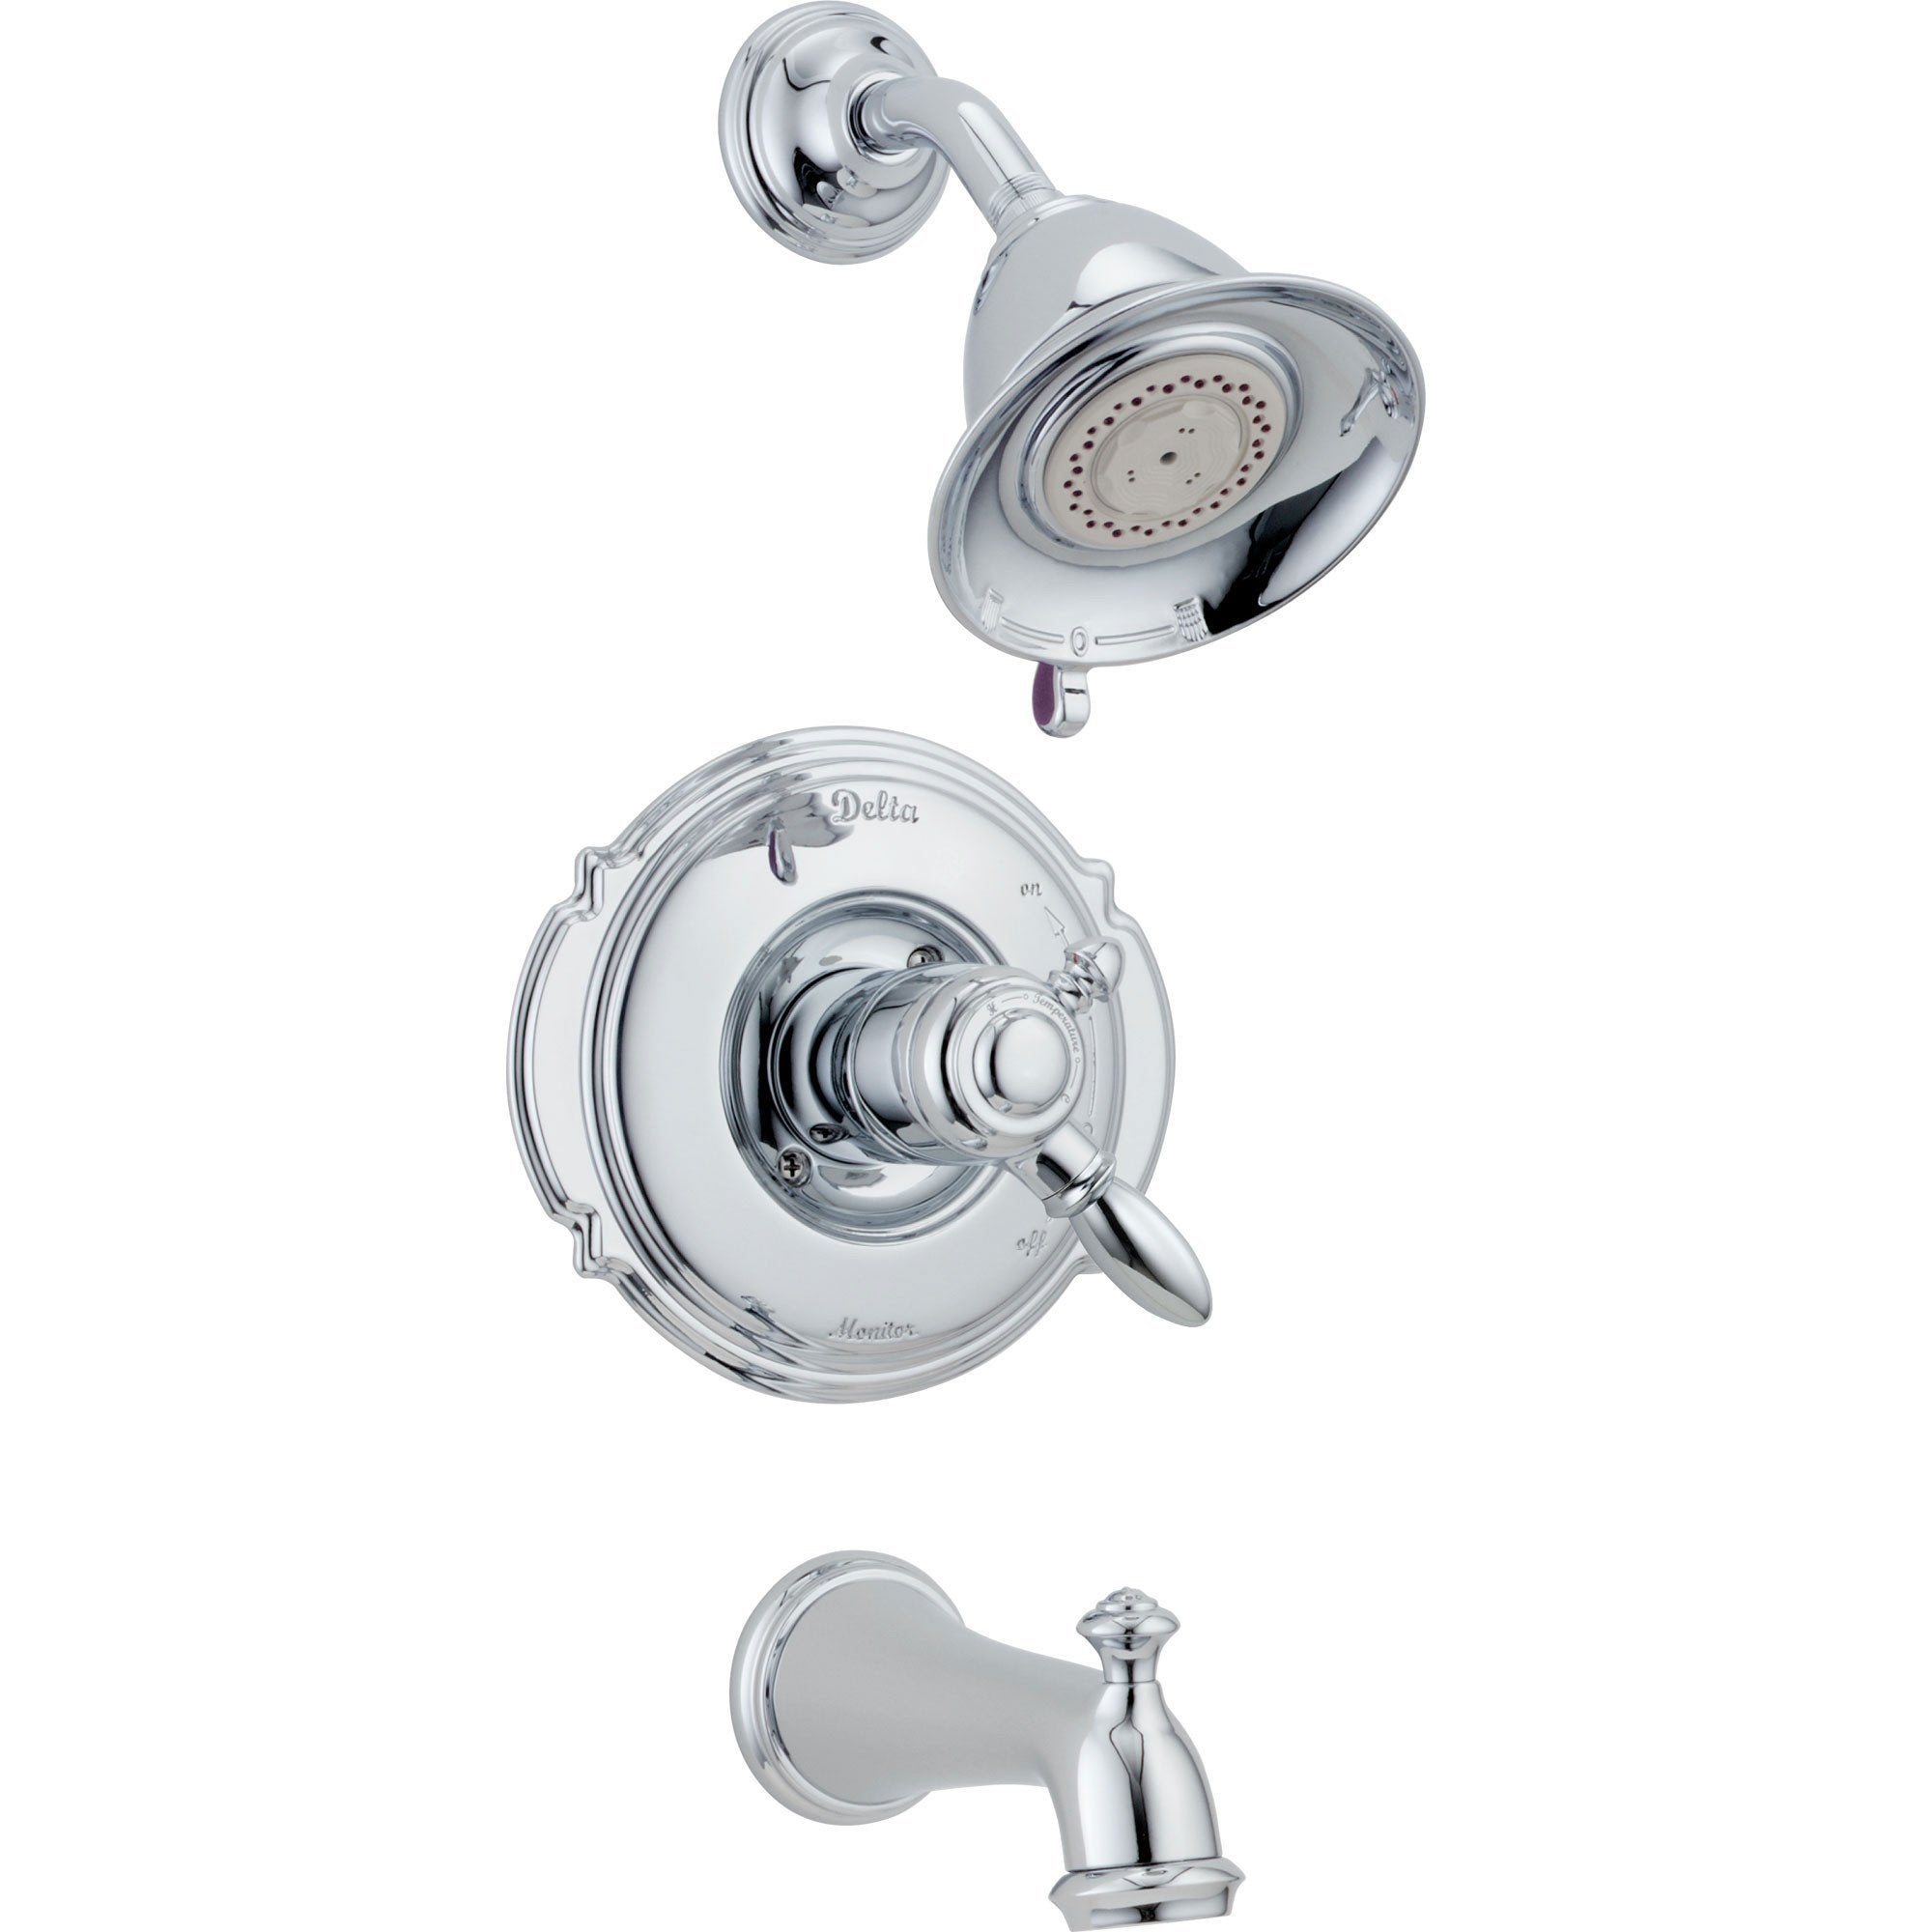 Delta Victorian Chrome Pressure Balanced Tub and Shower Faucet with Valve D453V